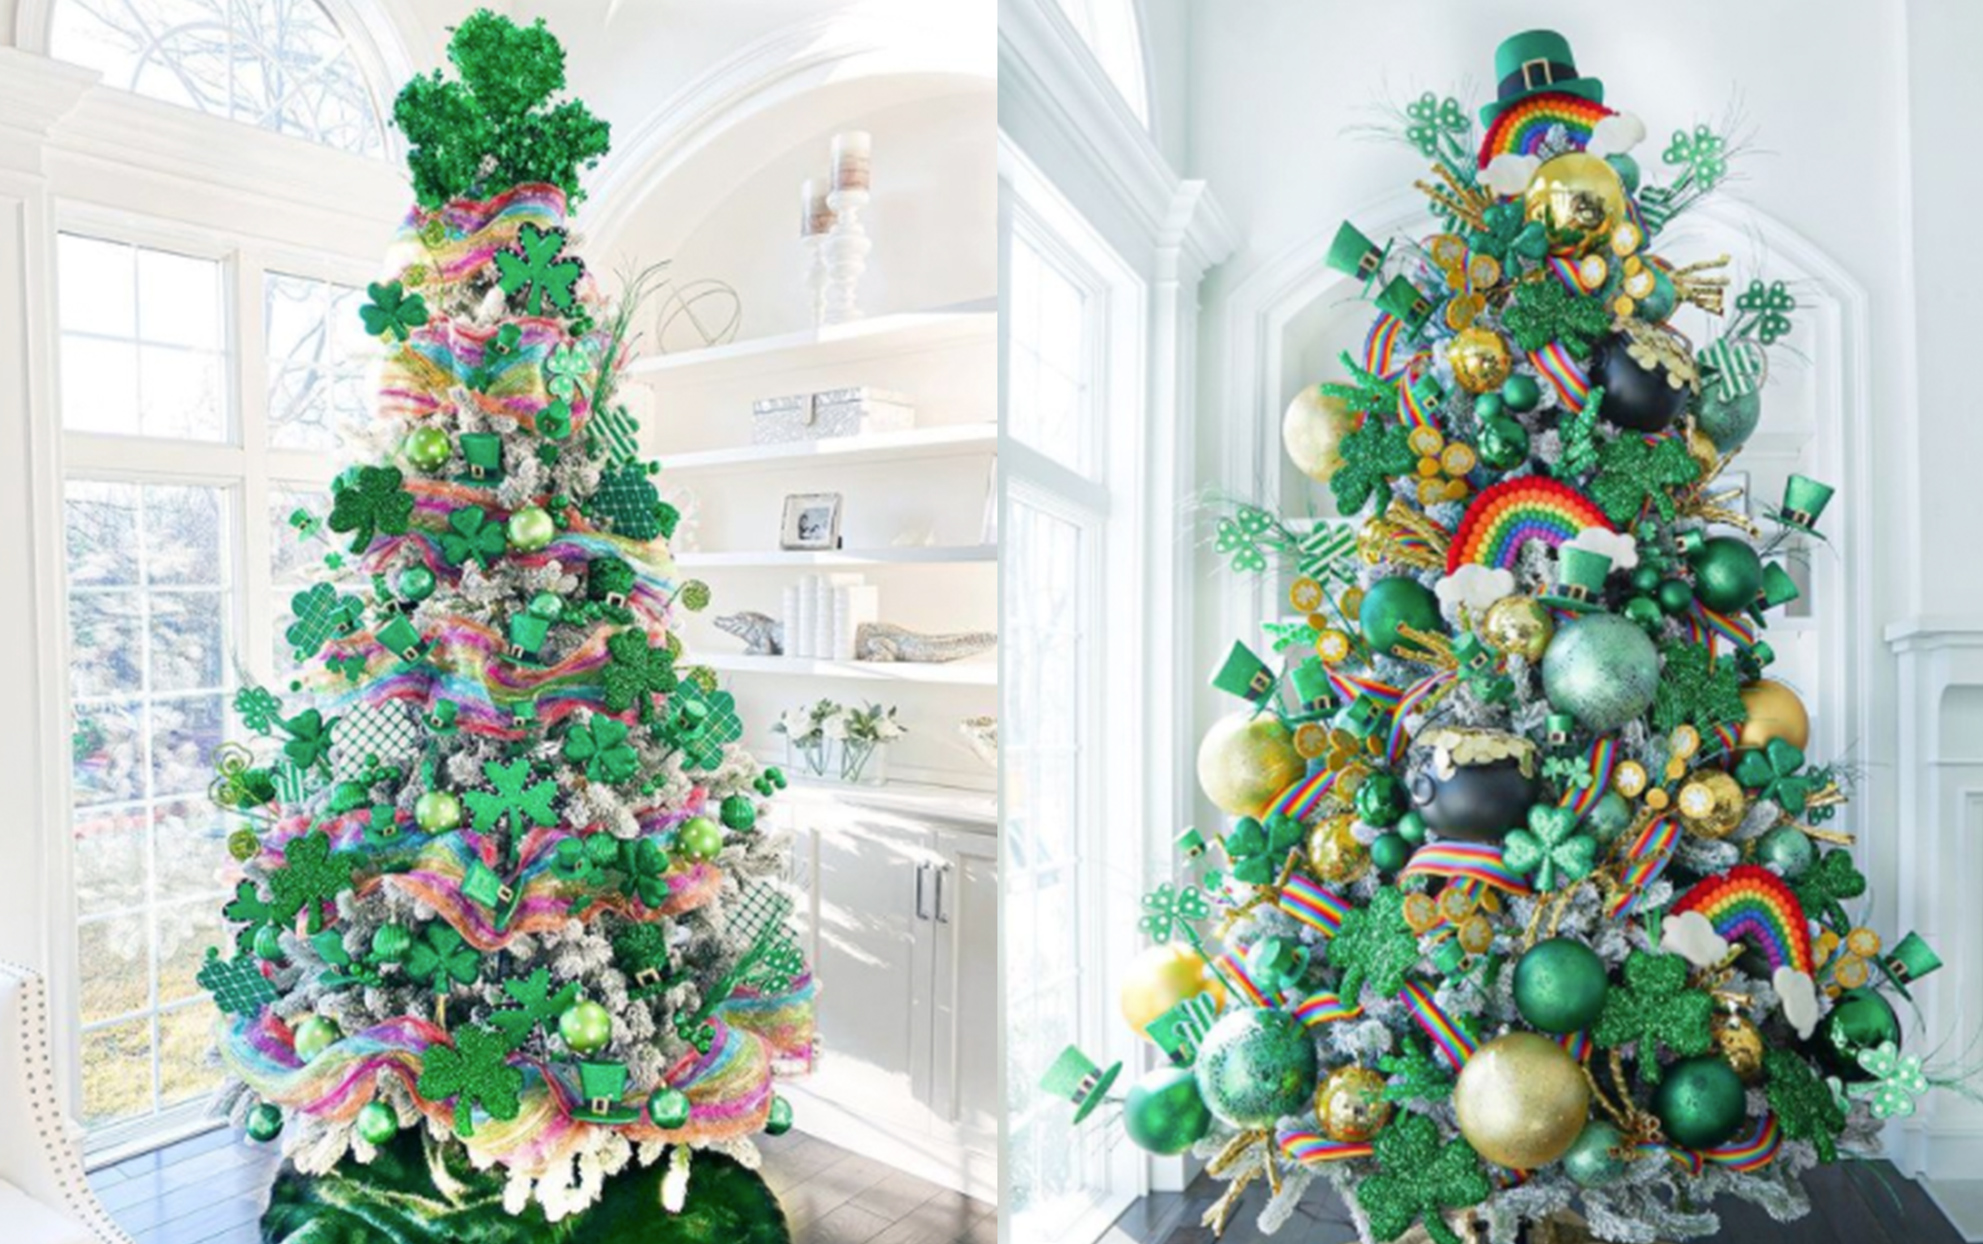 Two St. Patrick's Day trees side by side